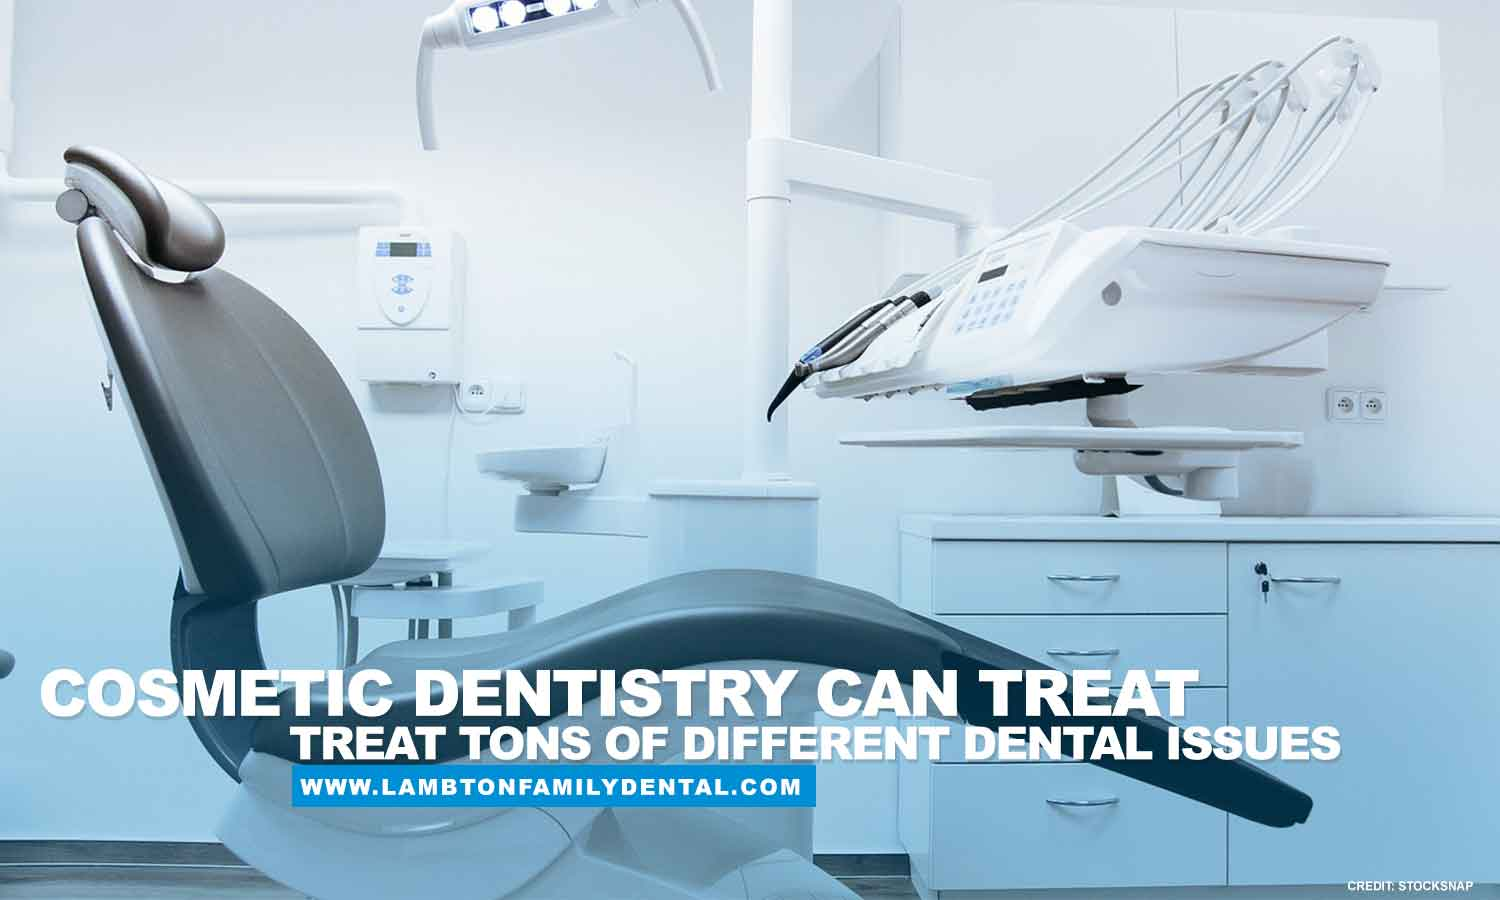 Cosmetic dentistry can treat tons of different dental issues